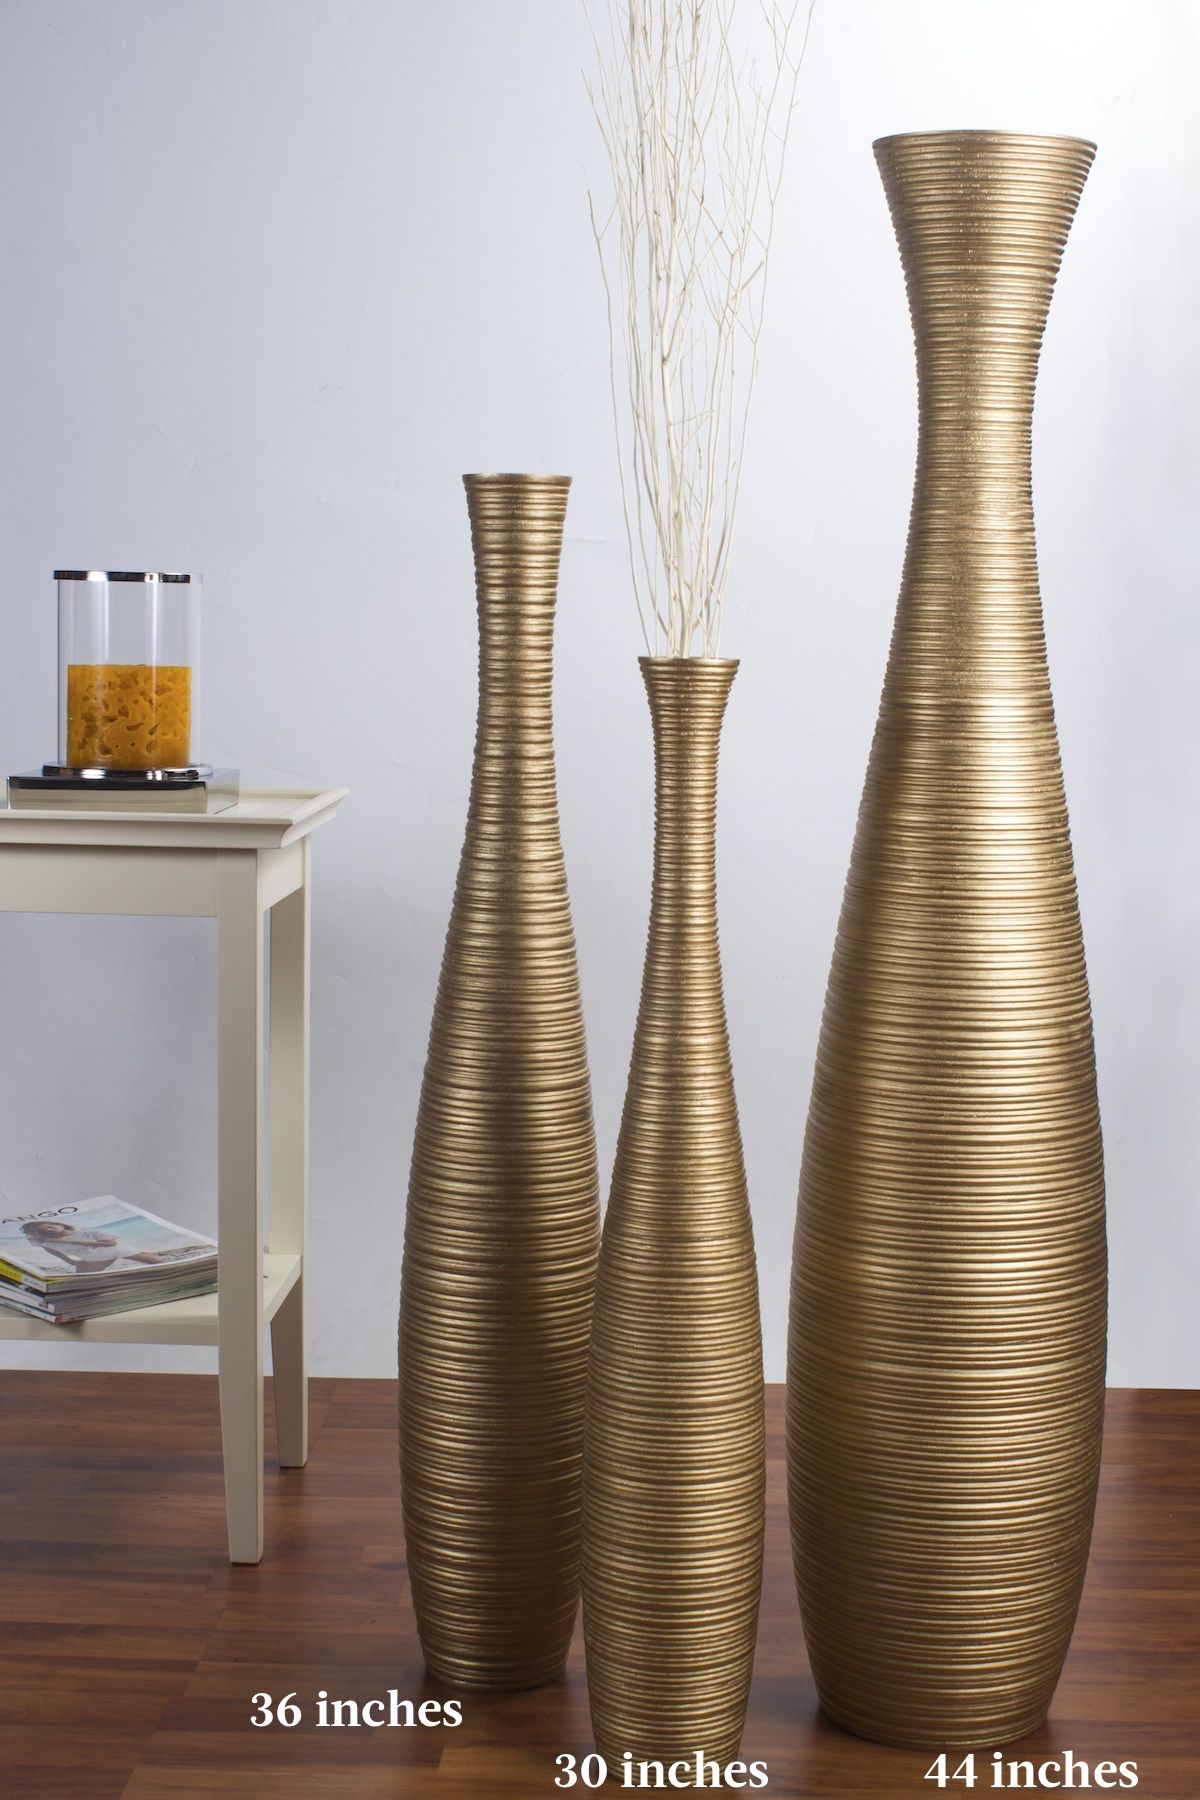 Leewadee Tall Big Floor Standing Vase For Home Decor 44 Inches Mango Wood Golden Tall Floor Vases Floor Standing Vase Tall Vase Decor